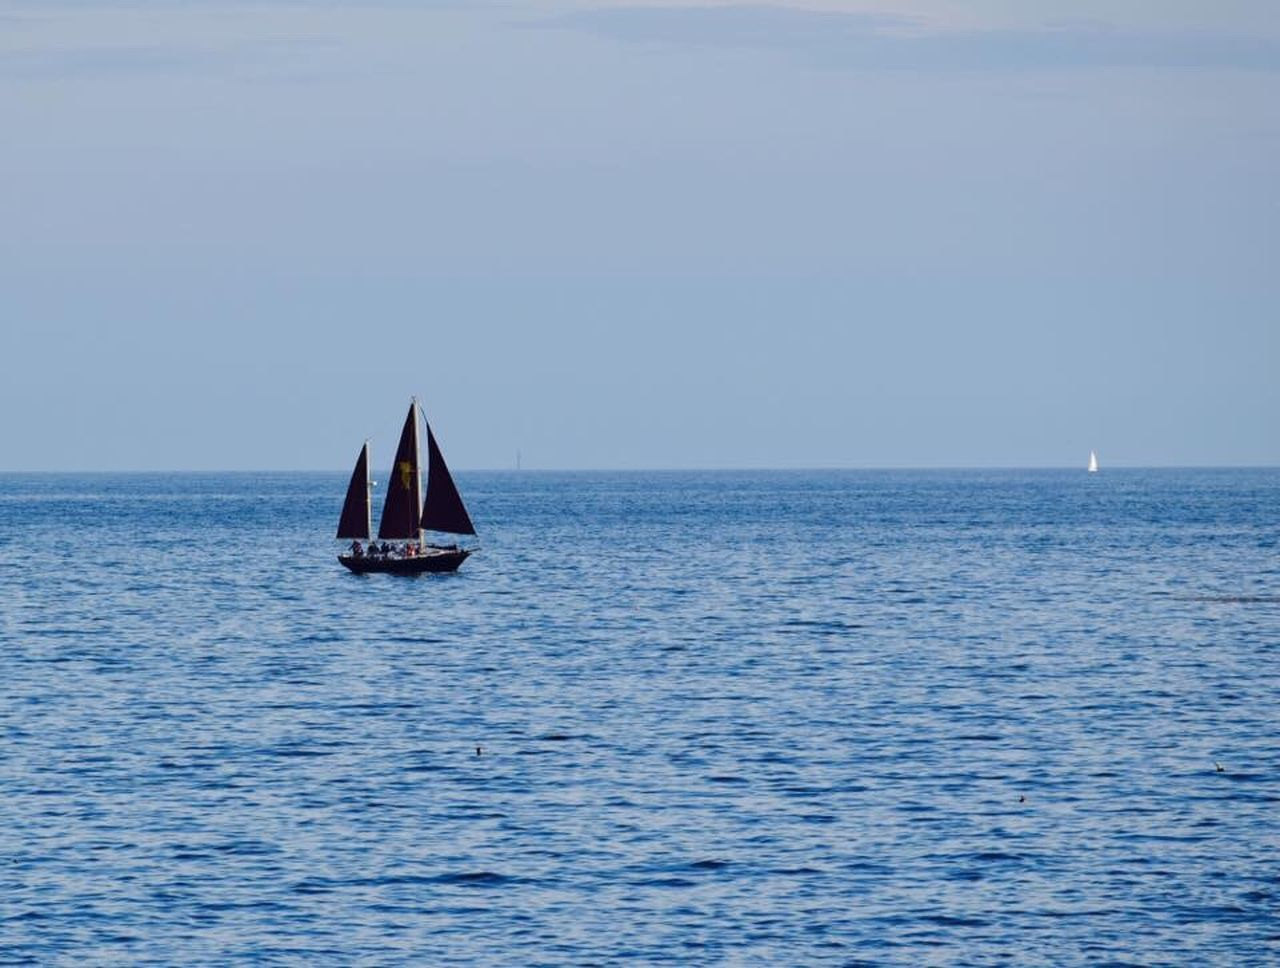 sea, sailboat, sailing, horizon over water, water, nautical vessel, waterfront, scenics, tranquility, tranquil scene, nature, clear sky, outdoors, day, beauty in nature, no people, blue, sky, mast, yacht, yachting